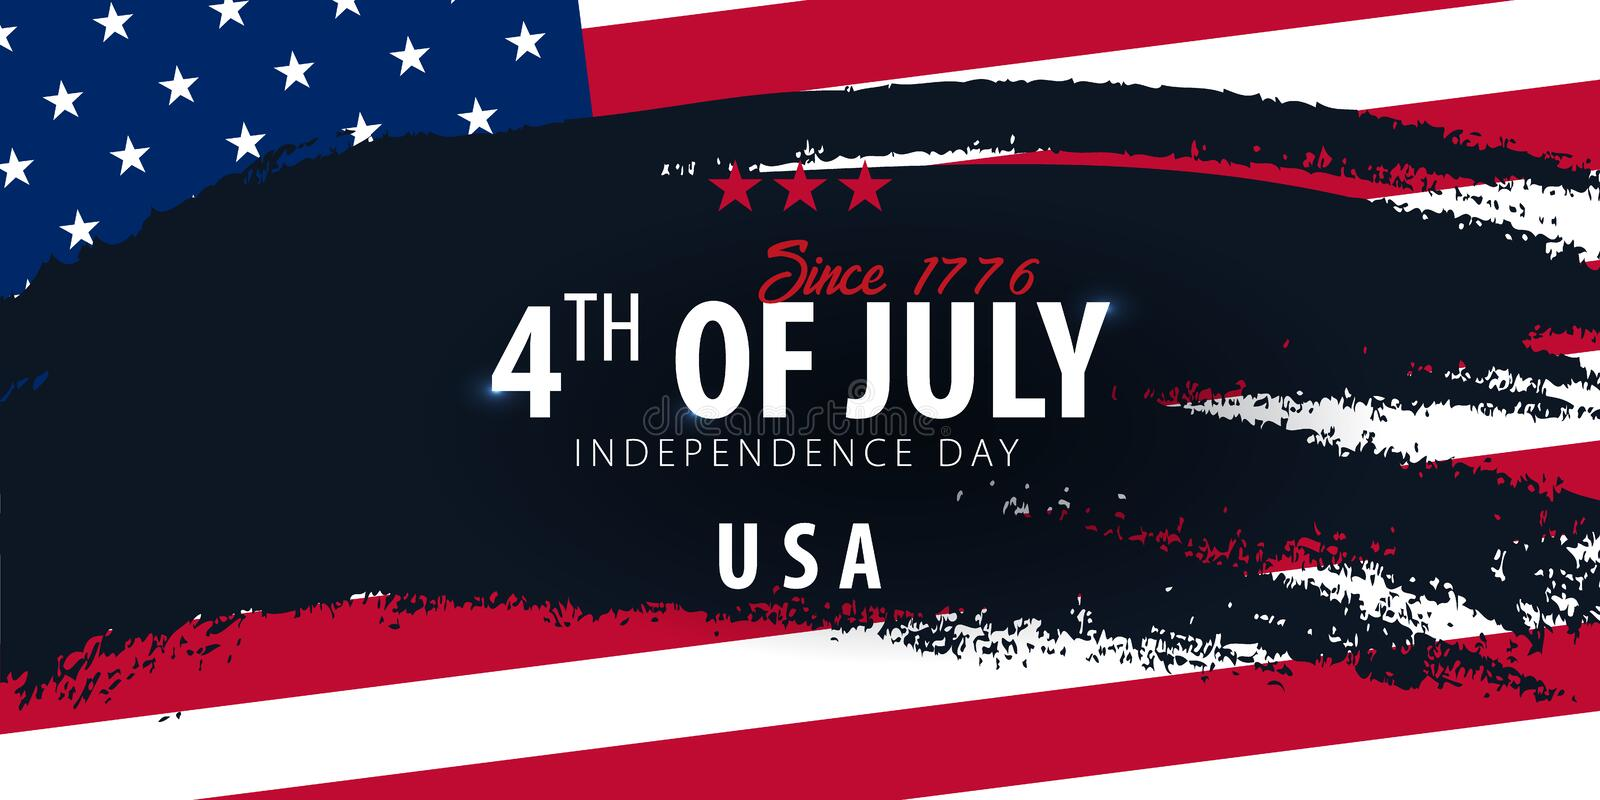 4th of July. USA independence day celebration banner with American flag on the background. Vector illustration. 4th of July. USA independence day celebration royalty free illustration